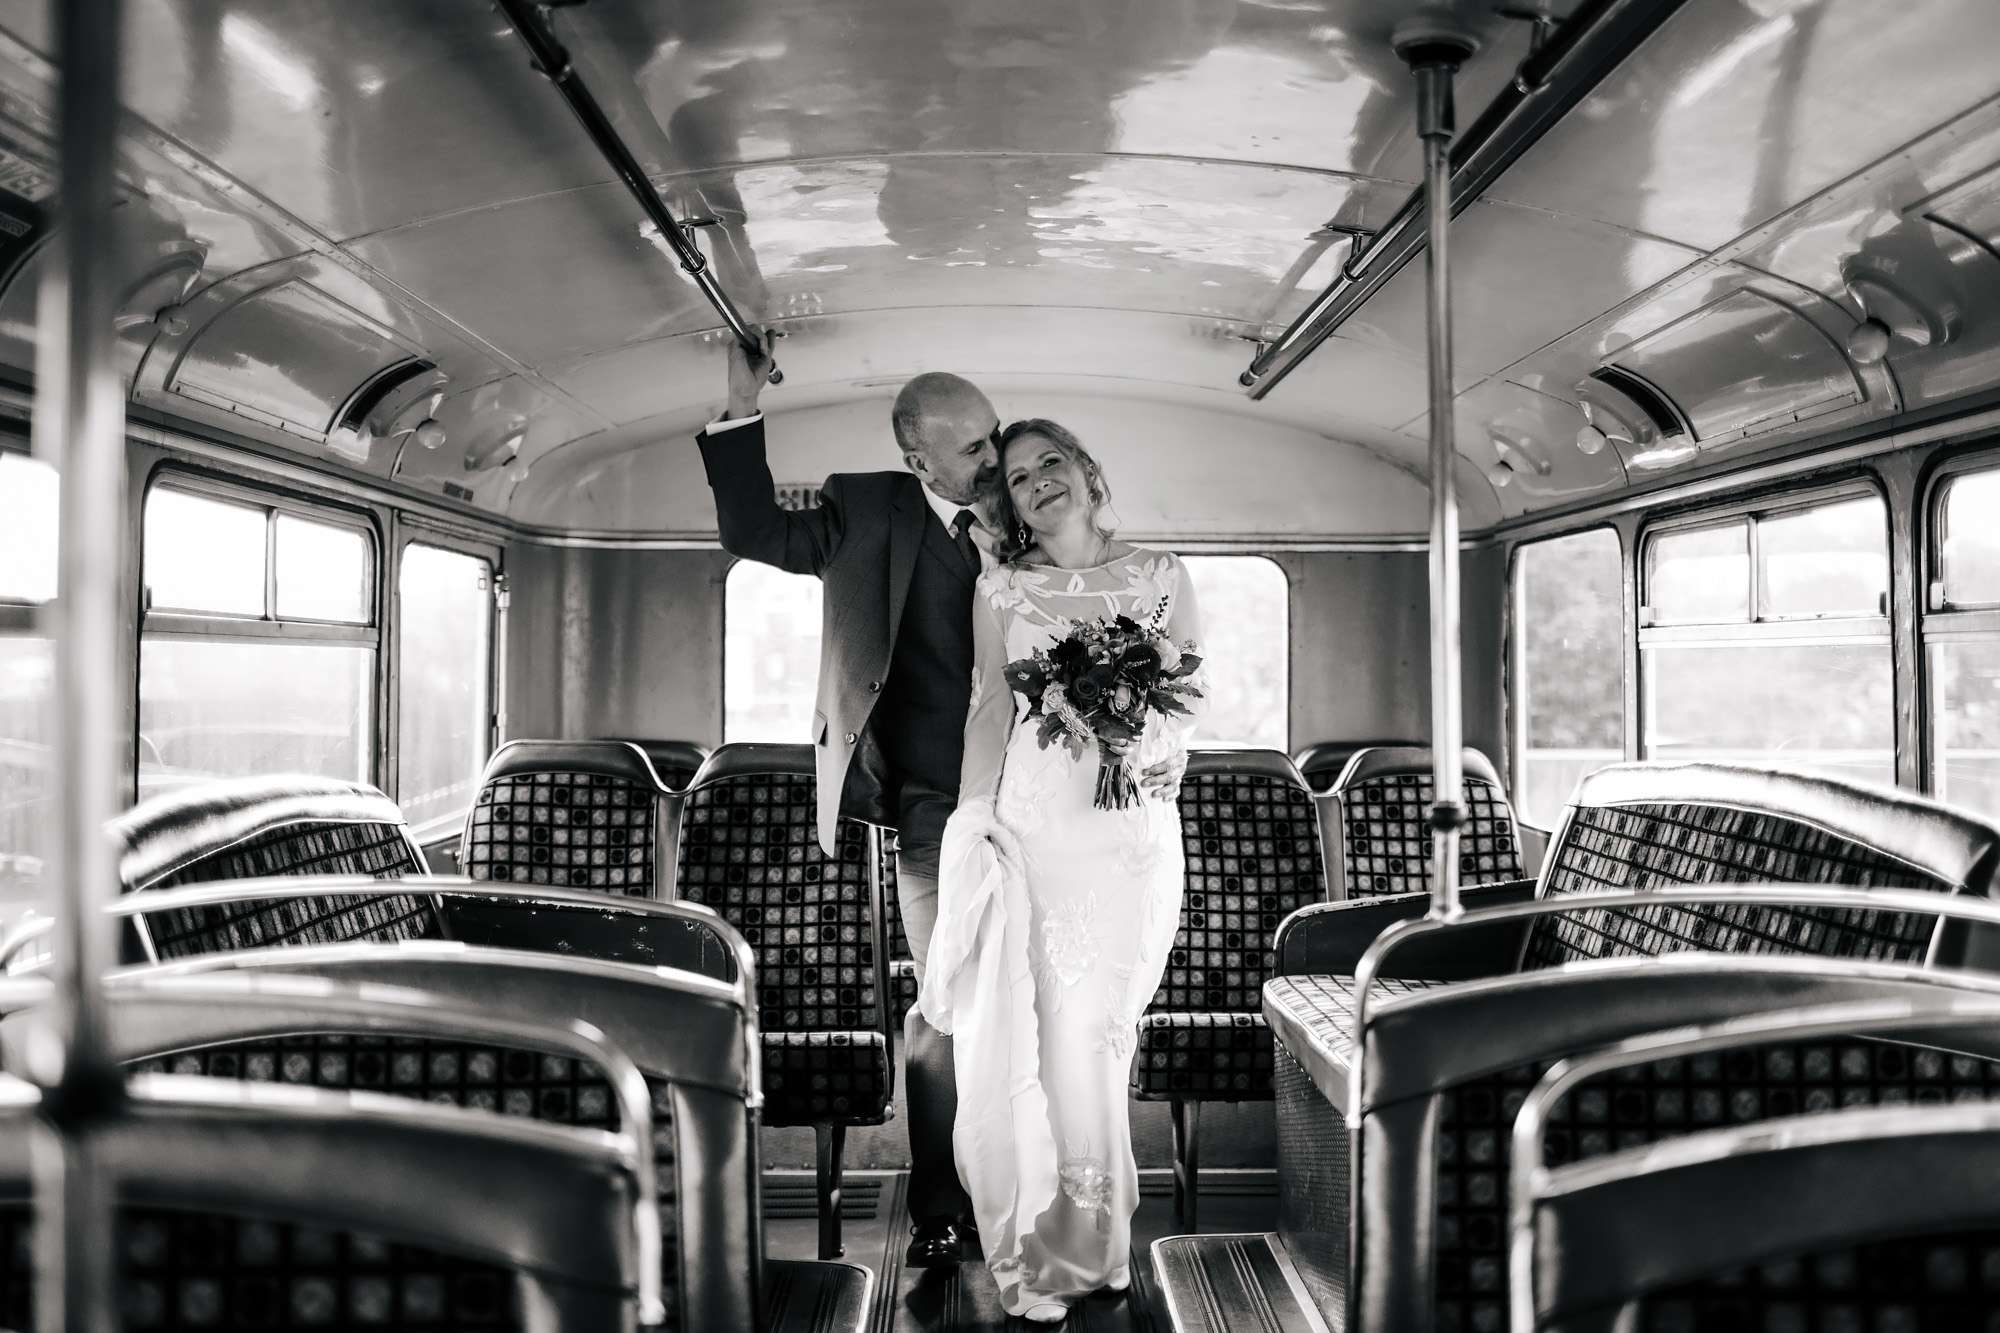 Bride and groom posing on the bus at their wedding